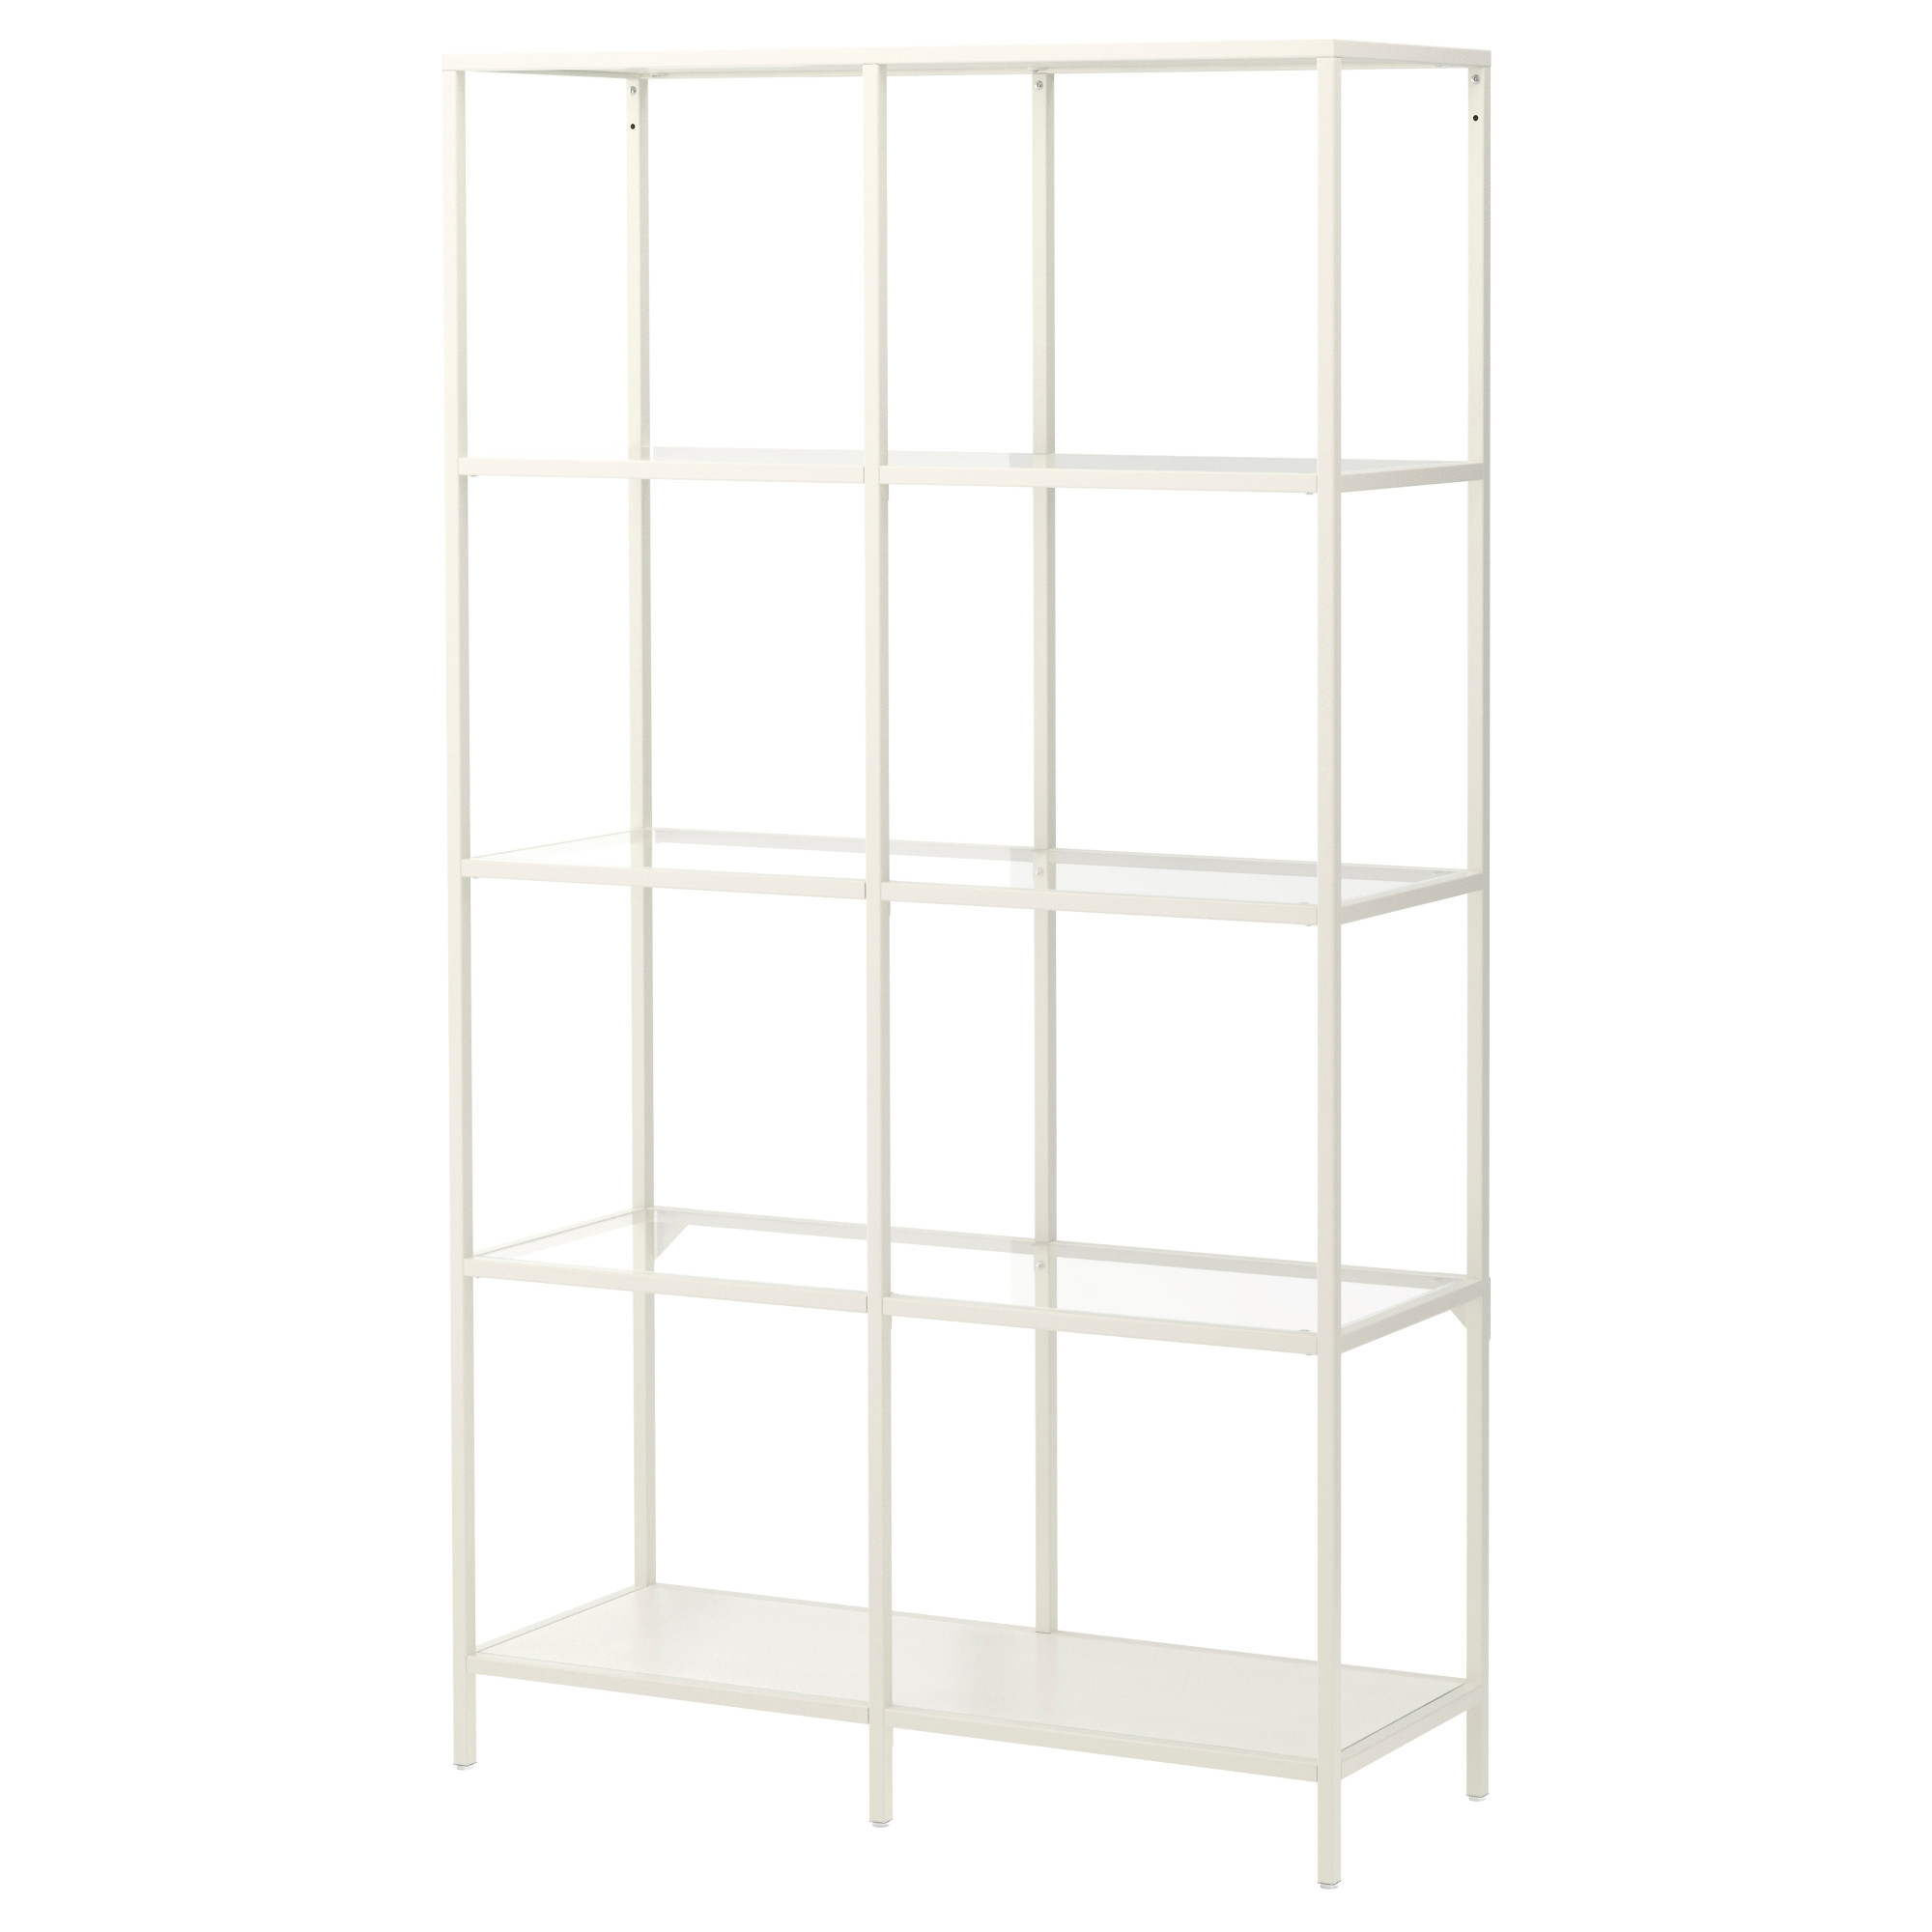 Shelves Shelving Units Ikea Regarding Suspended Glass Shelf (Image 10 of 15)